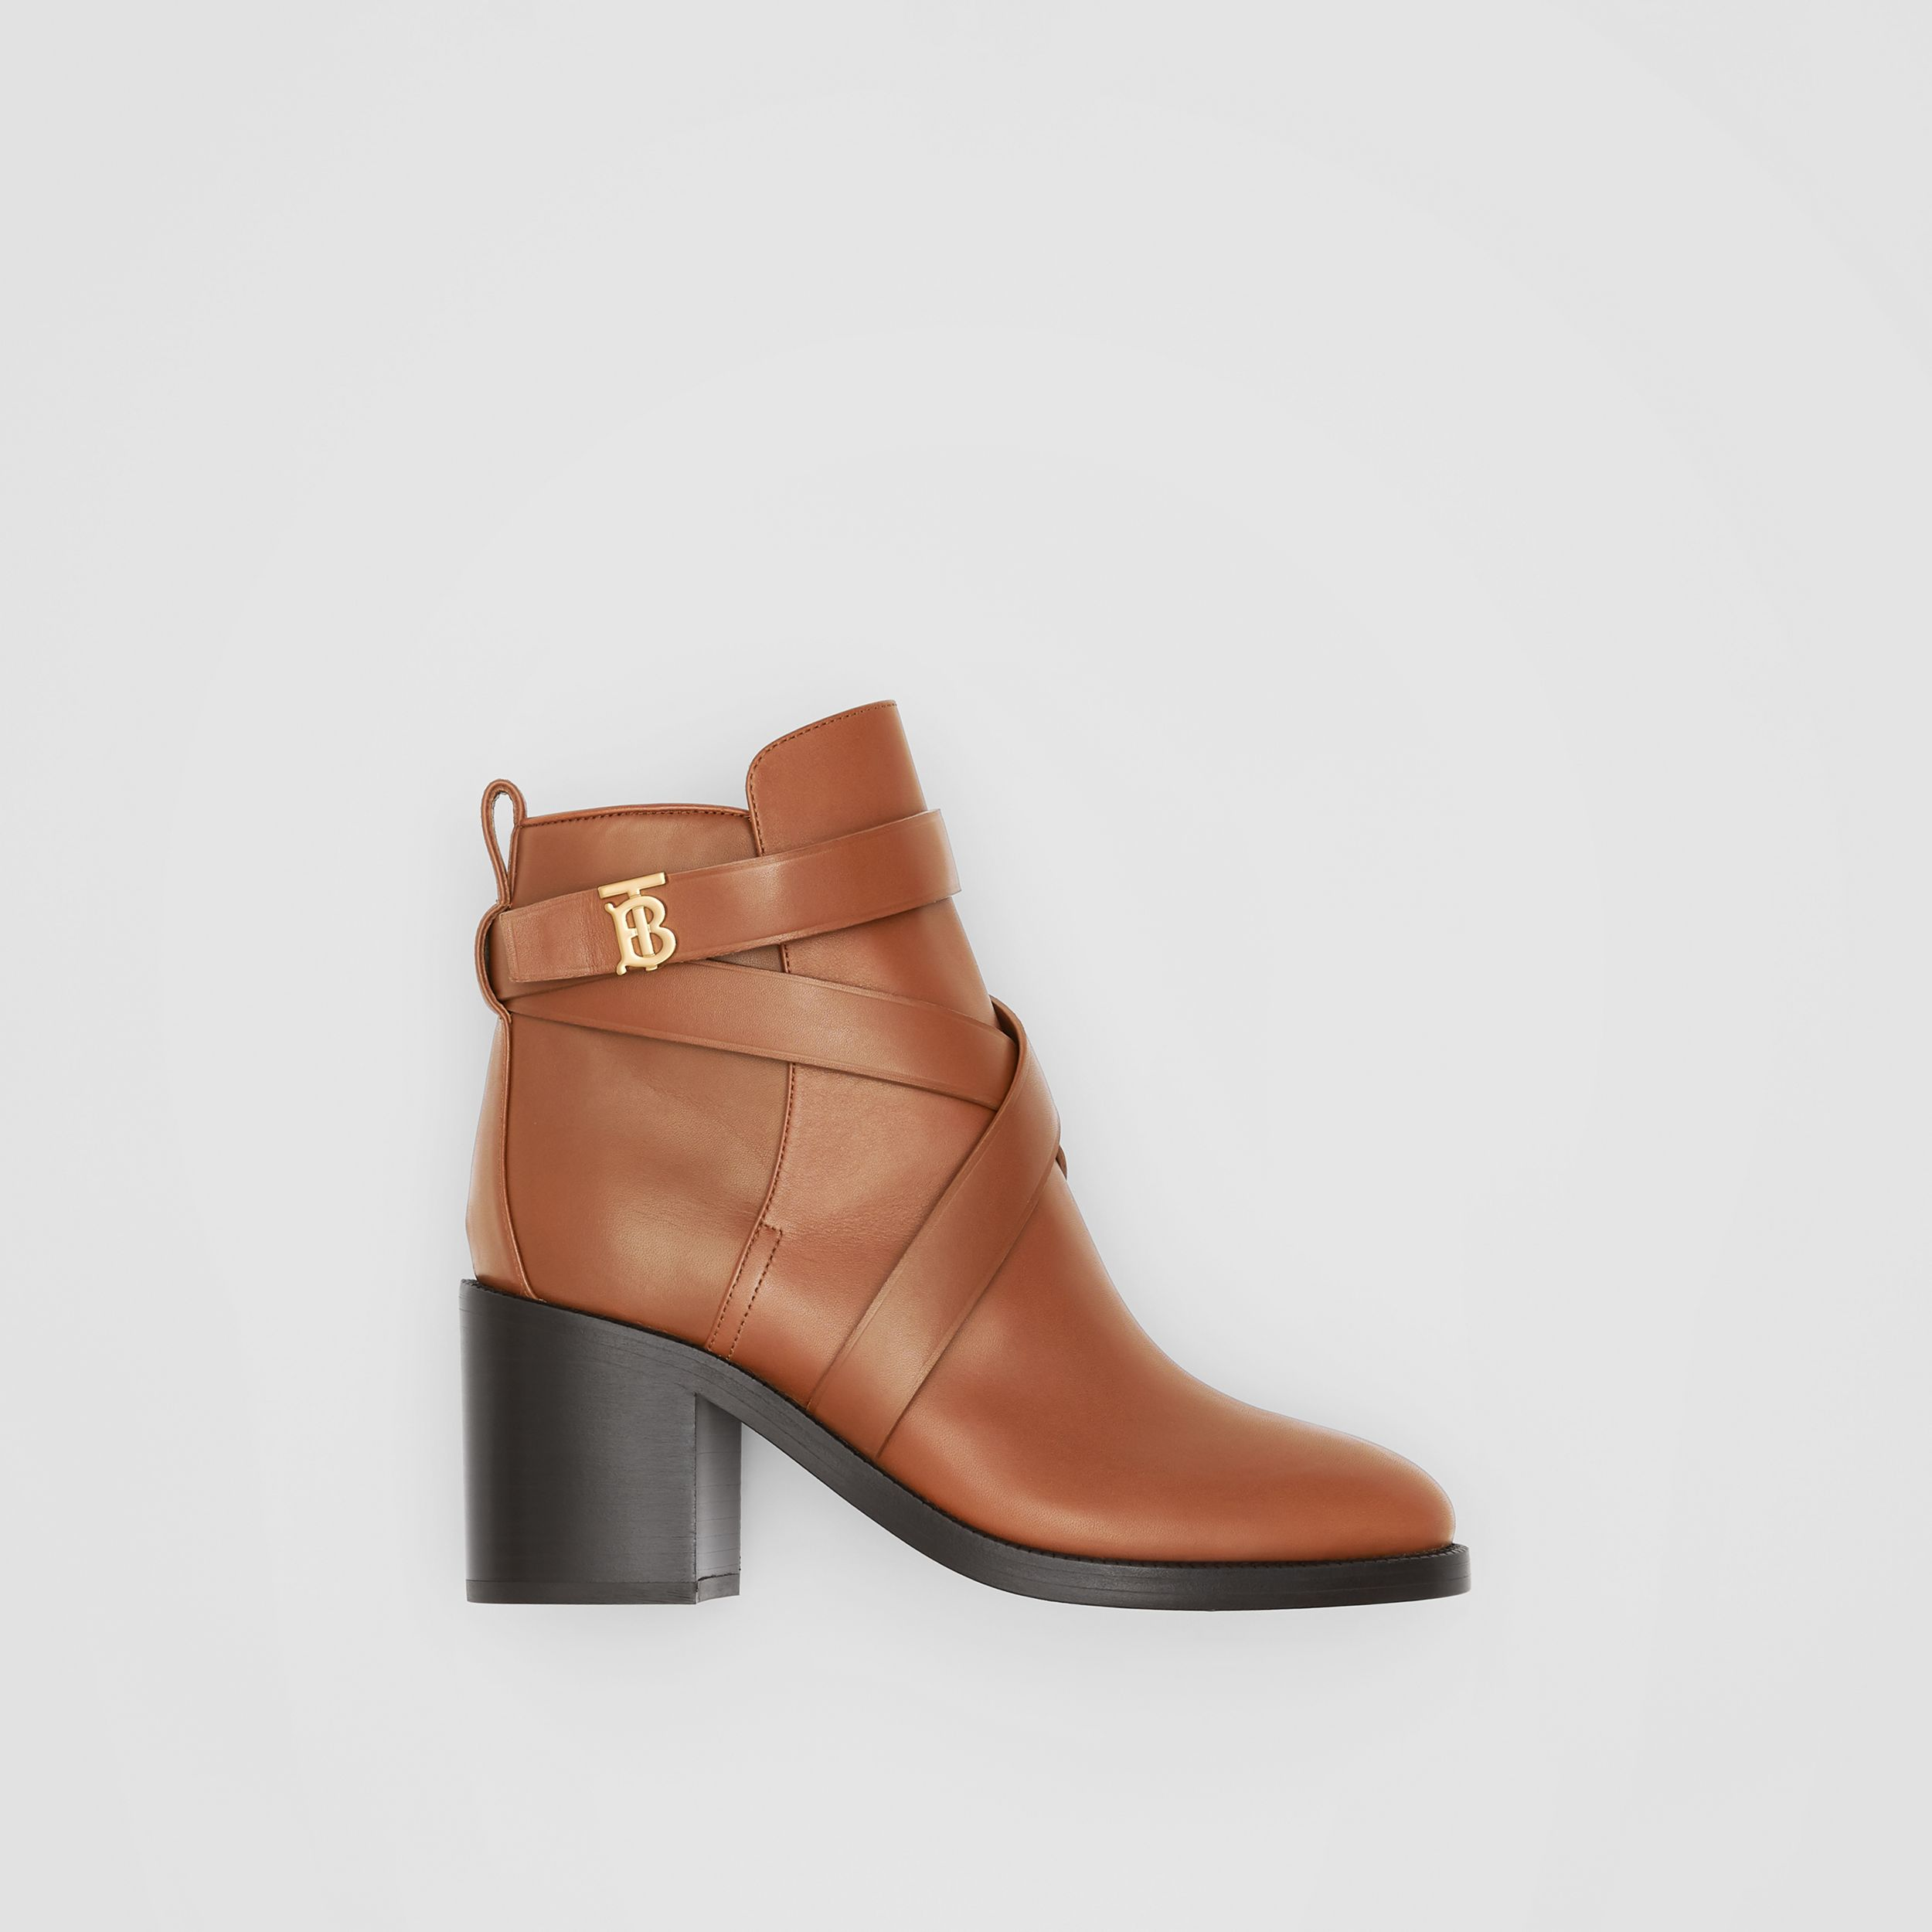 Monogram Motif Leather Ankle Boots in Tan - Women | Burberry United Kingdom - 1